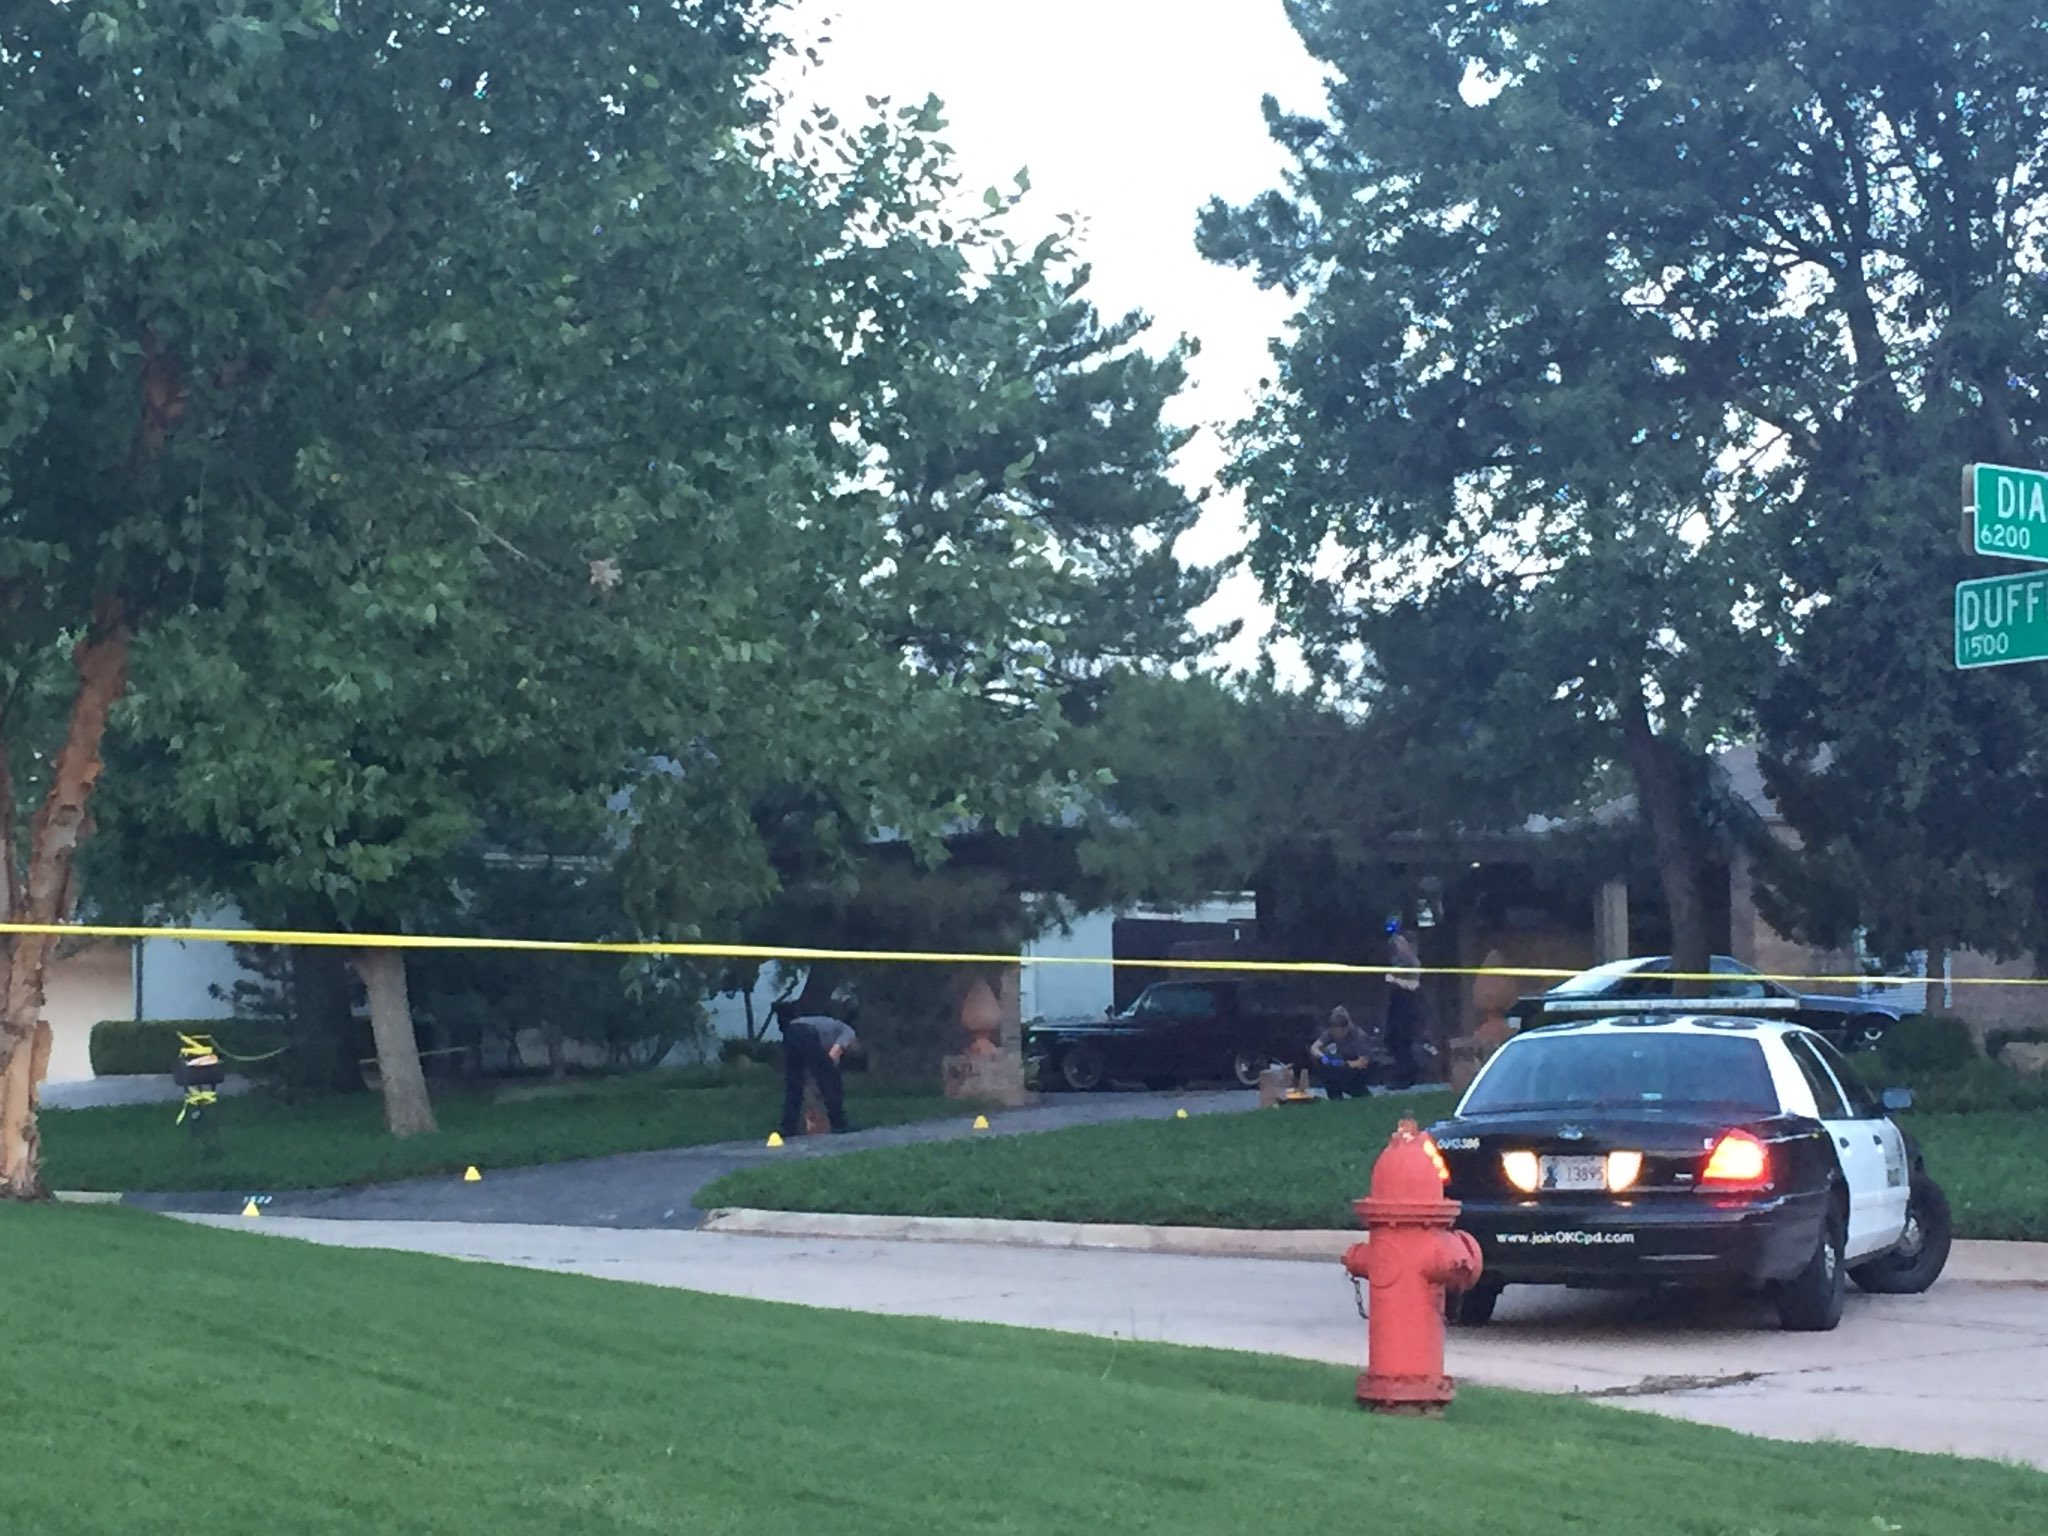 CSI gathering evidence on the driveway of the home. (Jordann Lucero / KOKH)